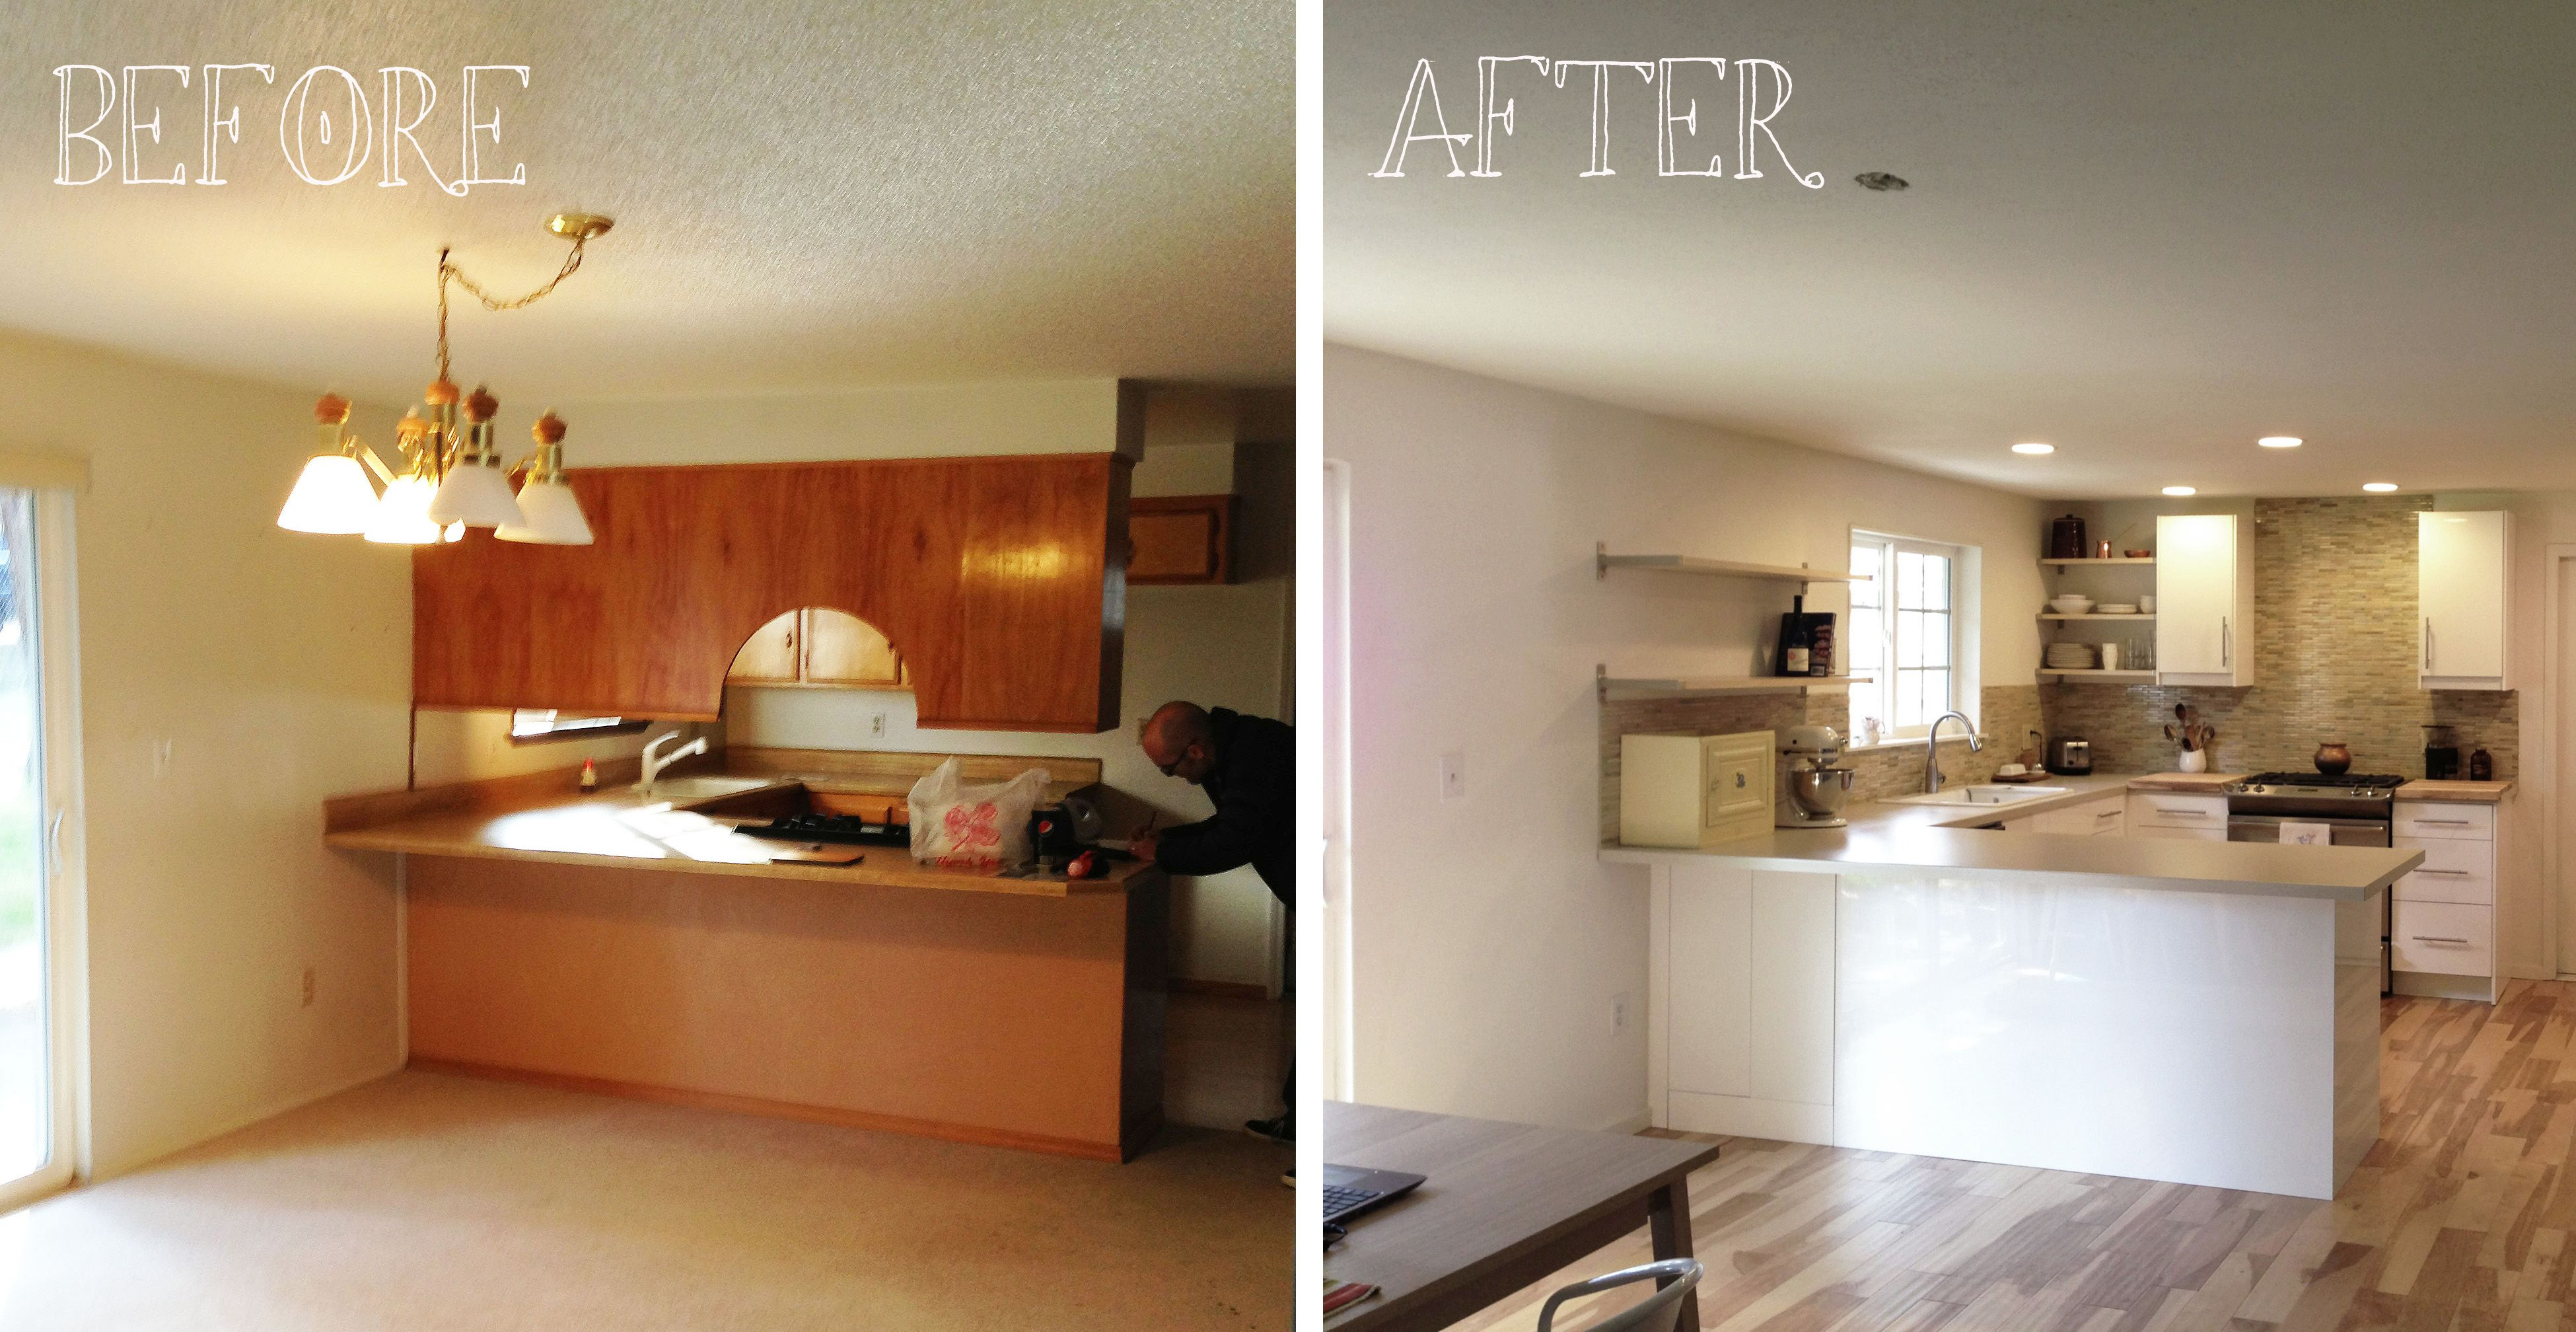 ordinary Condo Kitchen Remodel Before And After #5: 17 Best images about Renovations on Pinterest | Small kitchens, Kitchen  remodeling and Kitchens